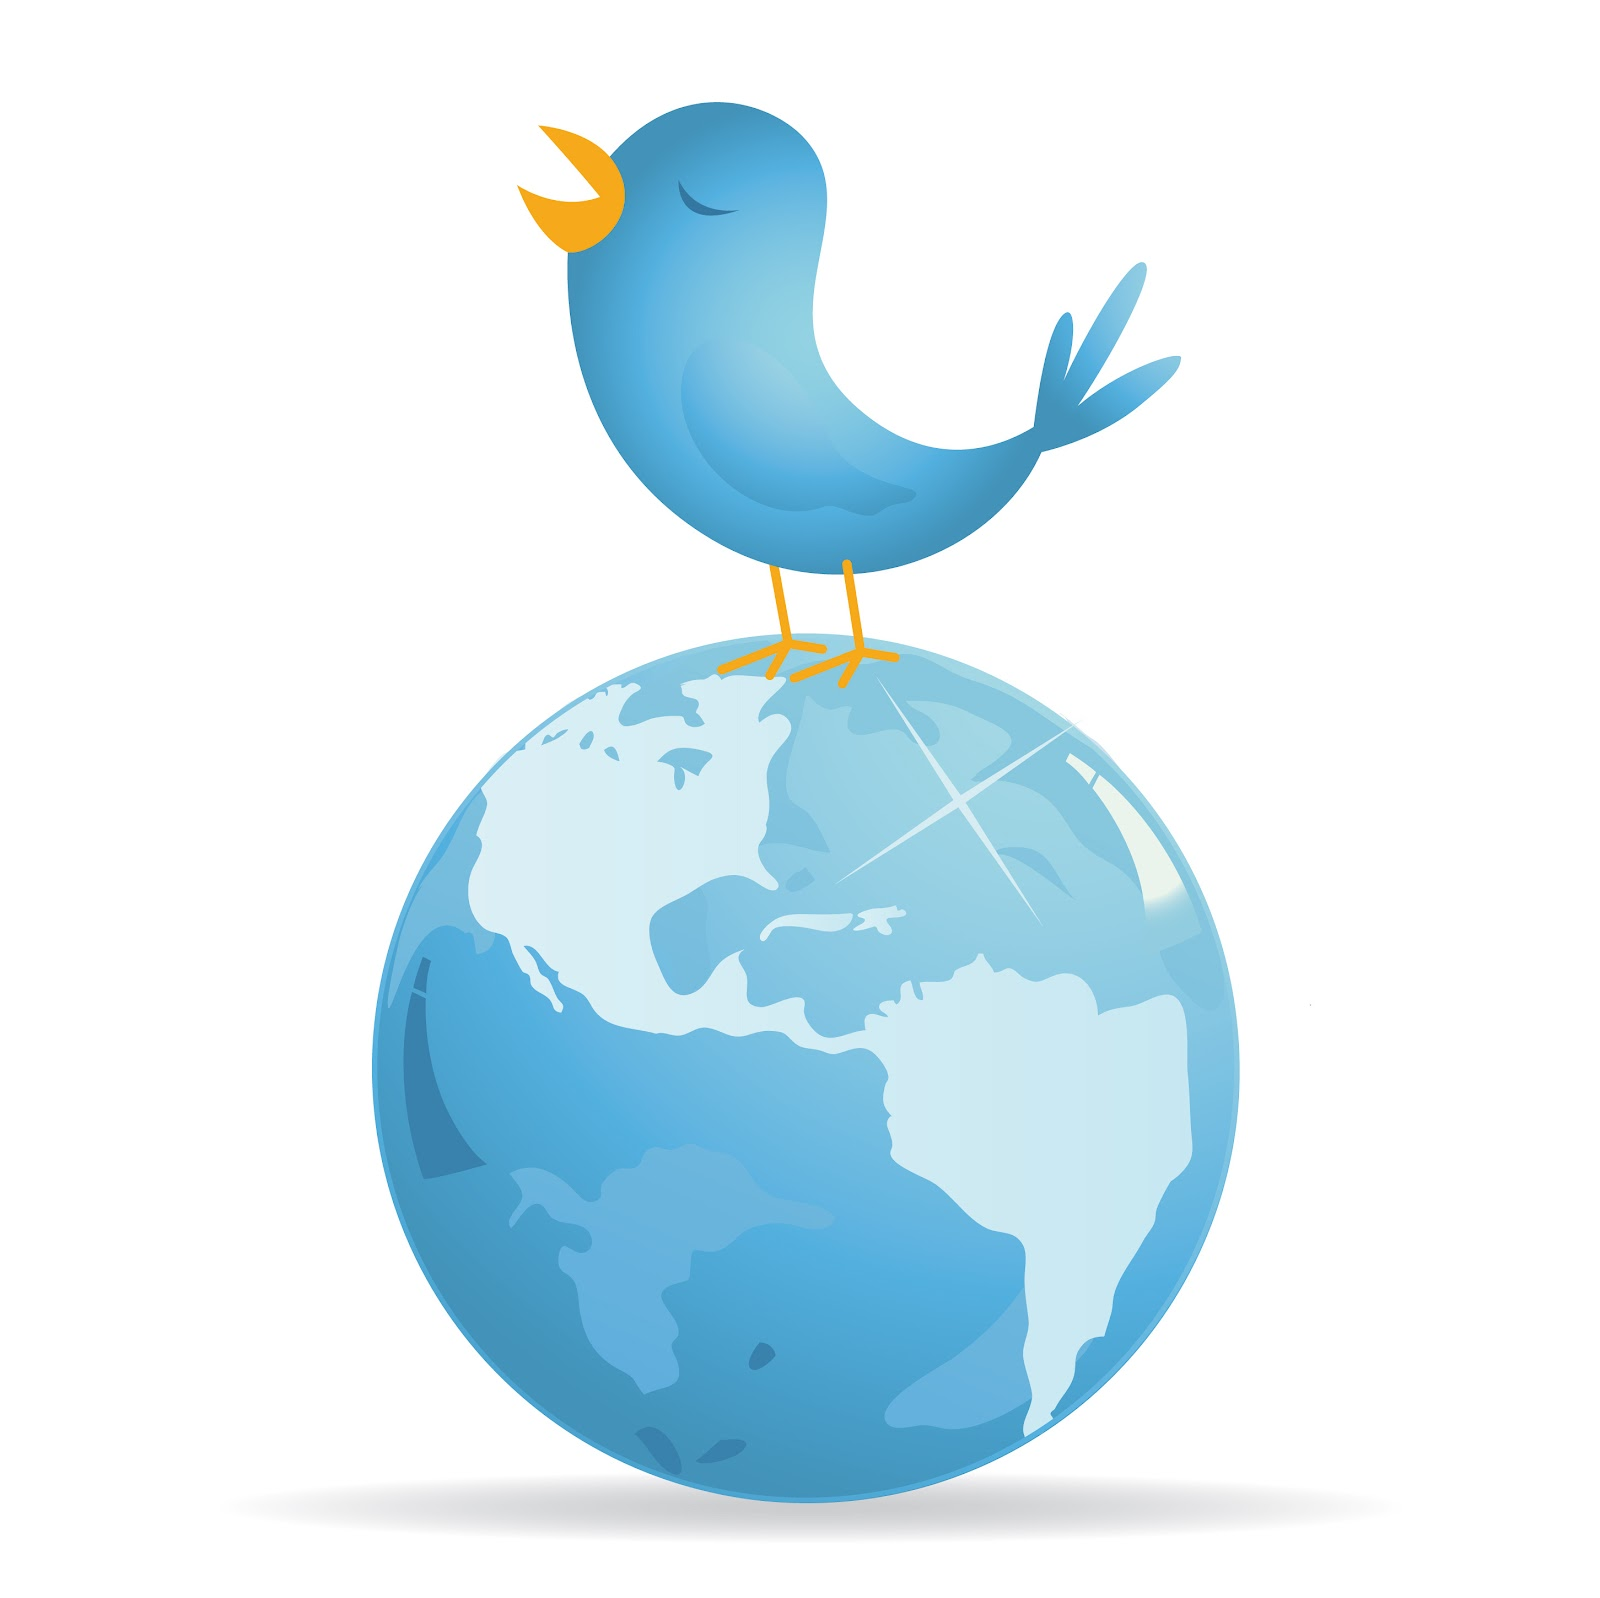 Twitter globe clipart image library GRAPH] Twitter's Popularity Around the Globe | MMXLII image library